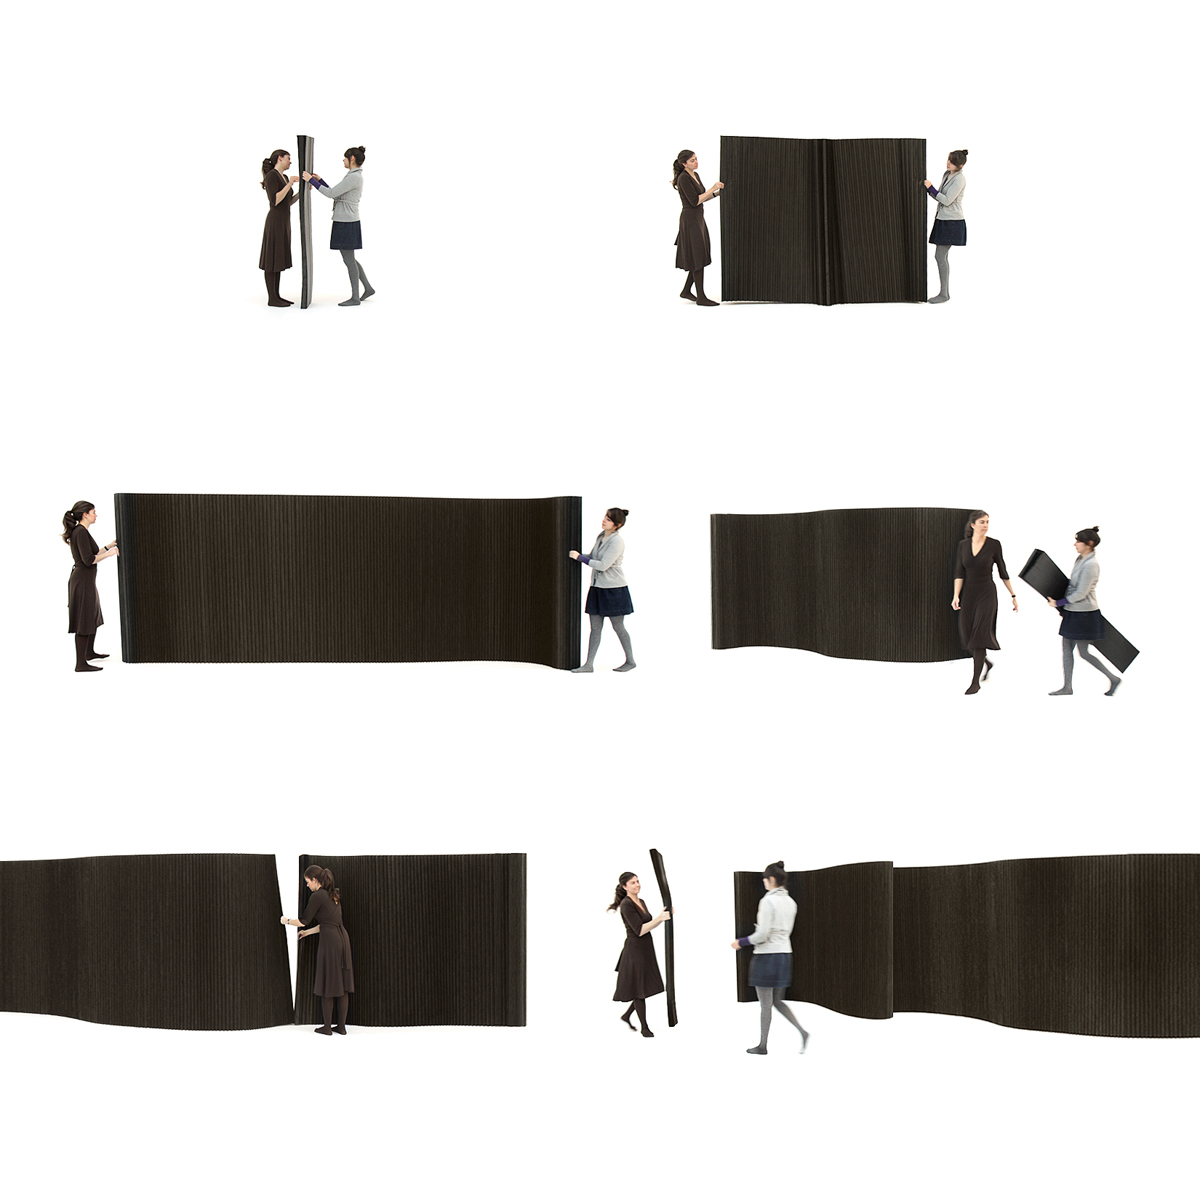 molo design softwall paper wall divider · opening softwall